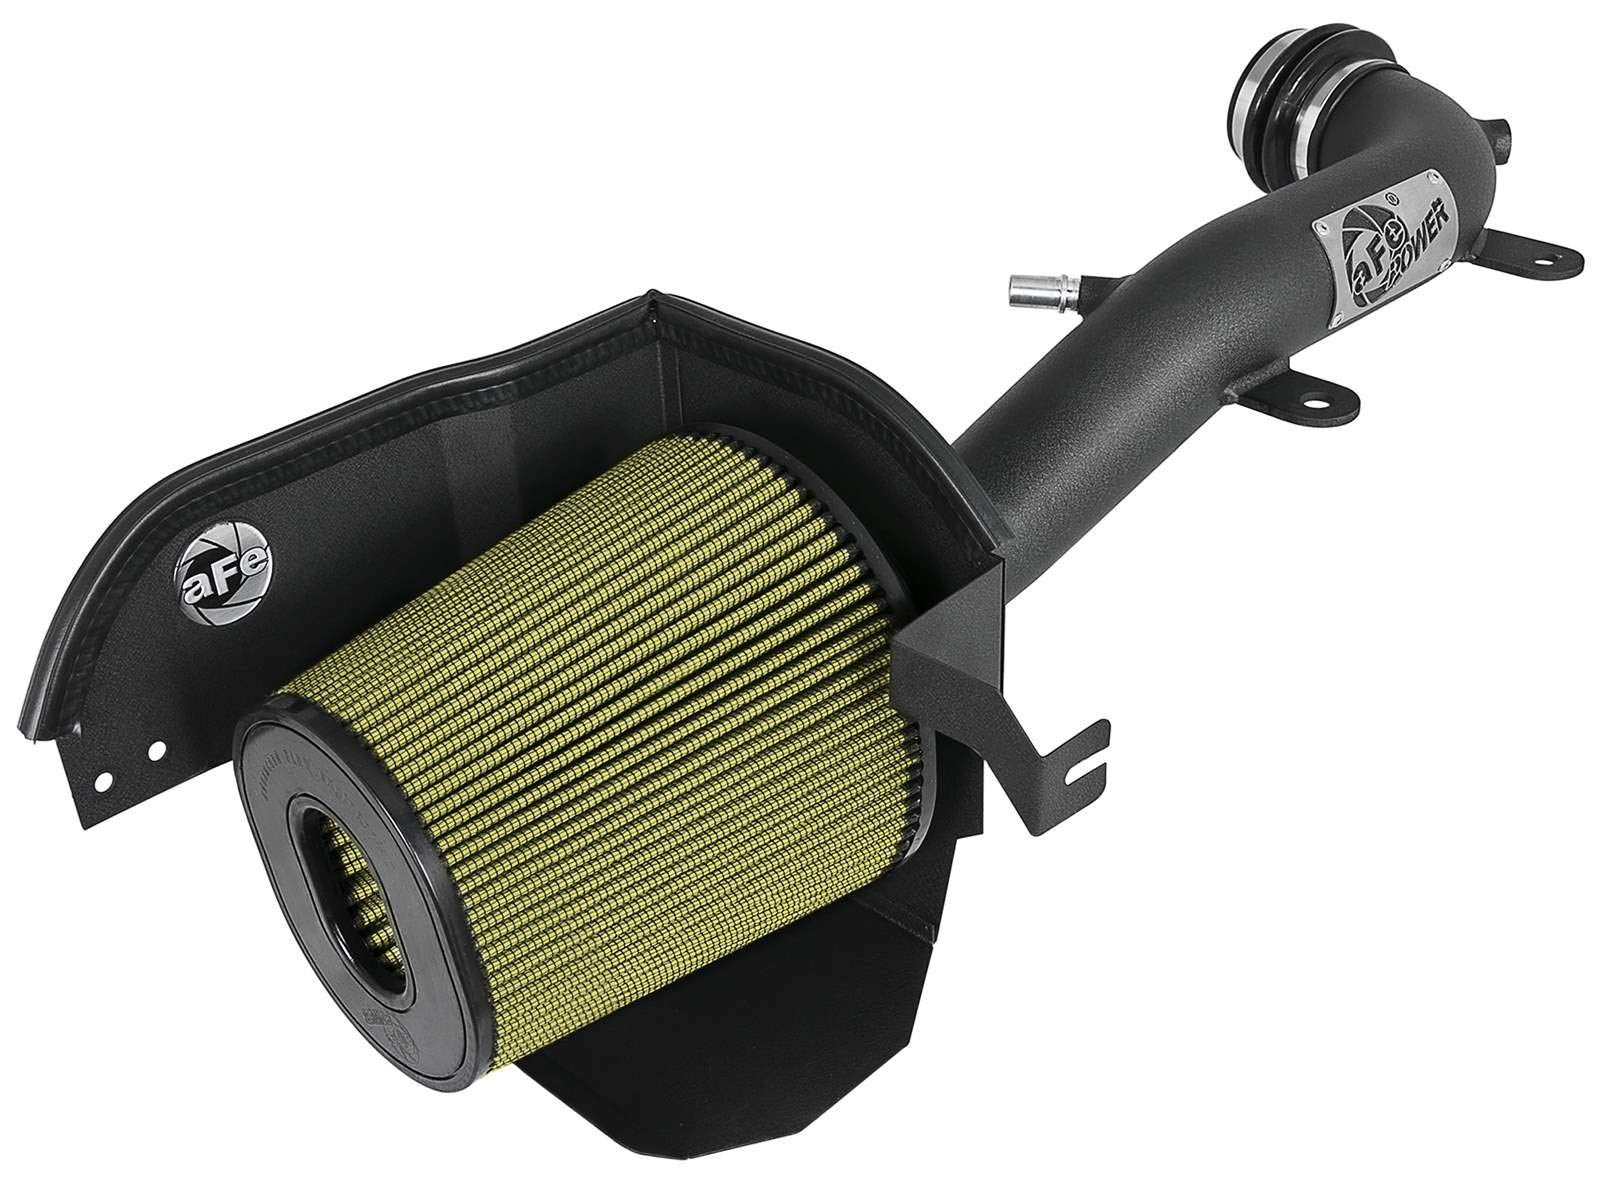 aFe Power 75-13002-B Cold Air Intake System (Non-CARB Compliant), 1 Pack